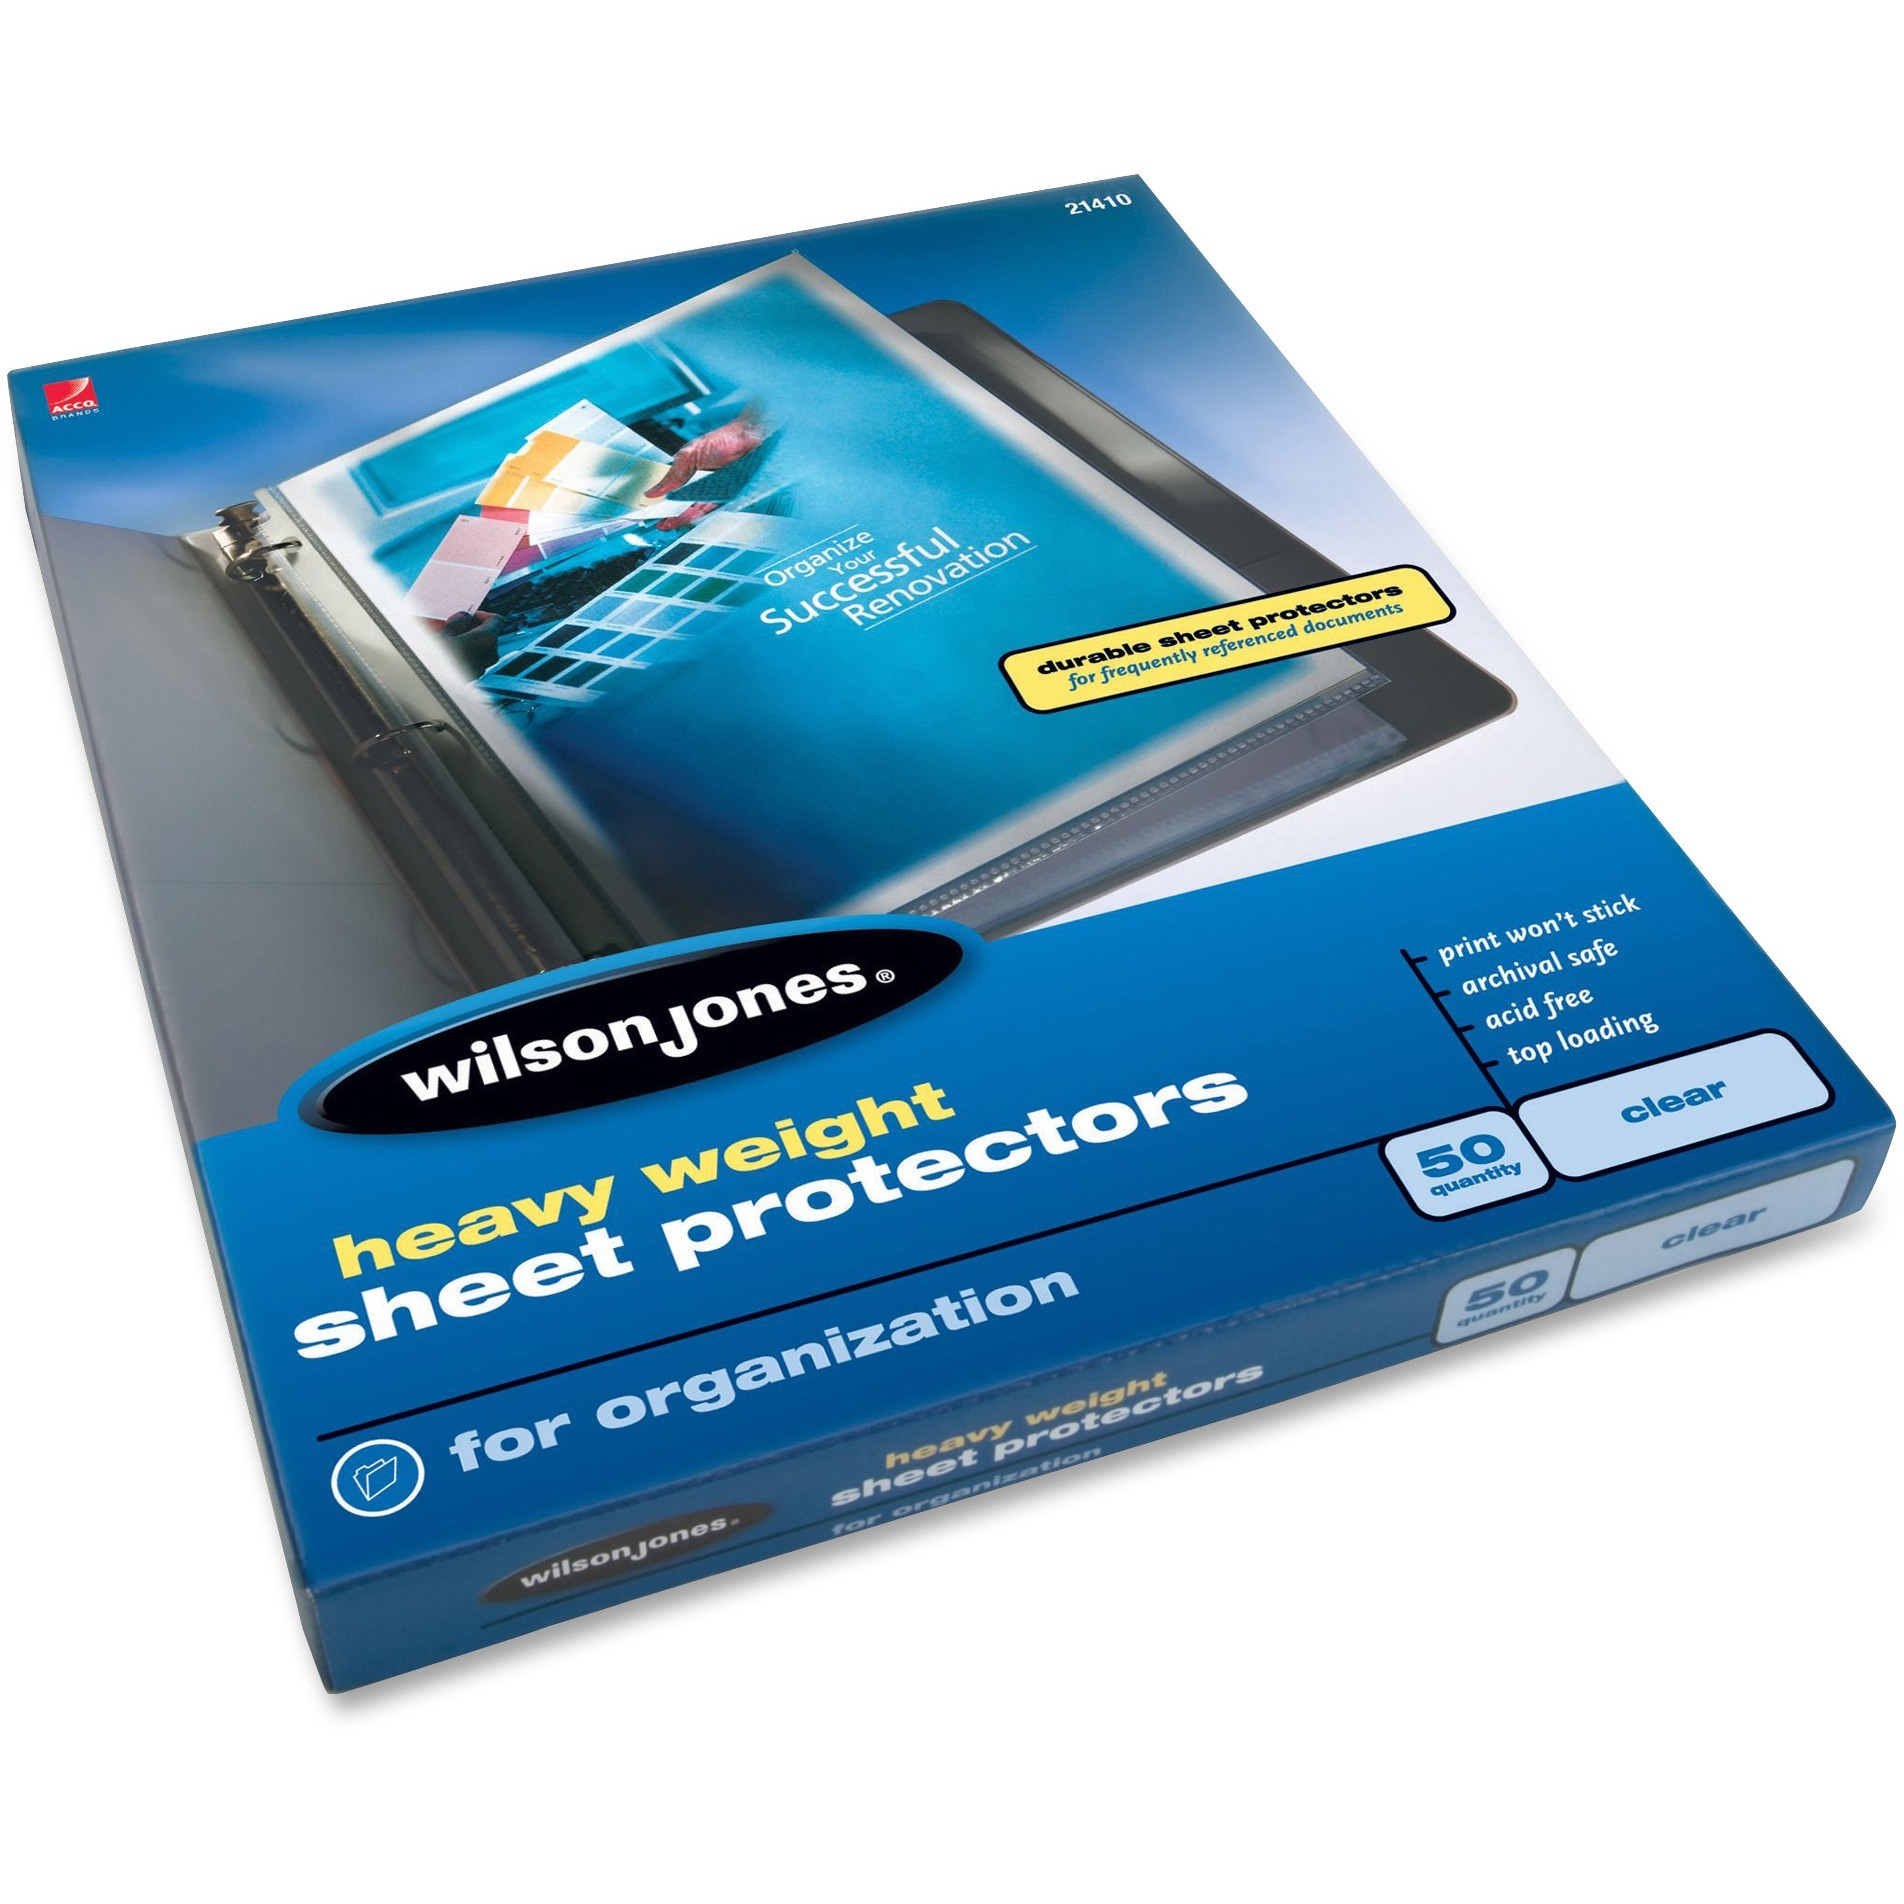 Wilson Jones, WLJ21410, Heavyweight Top-load Document Sleeves, 50 / Box, Clear